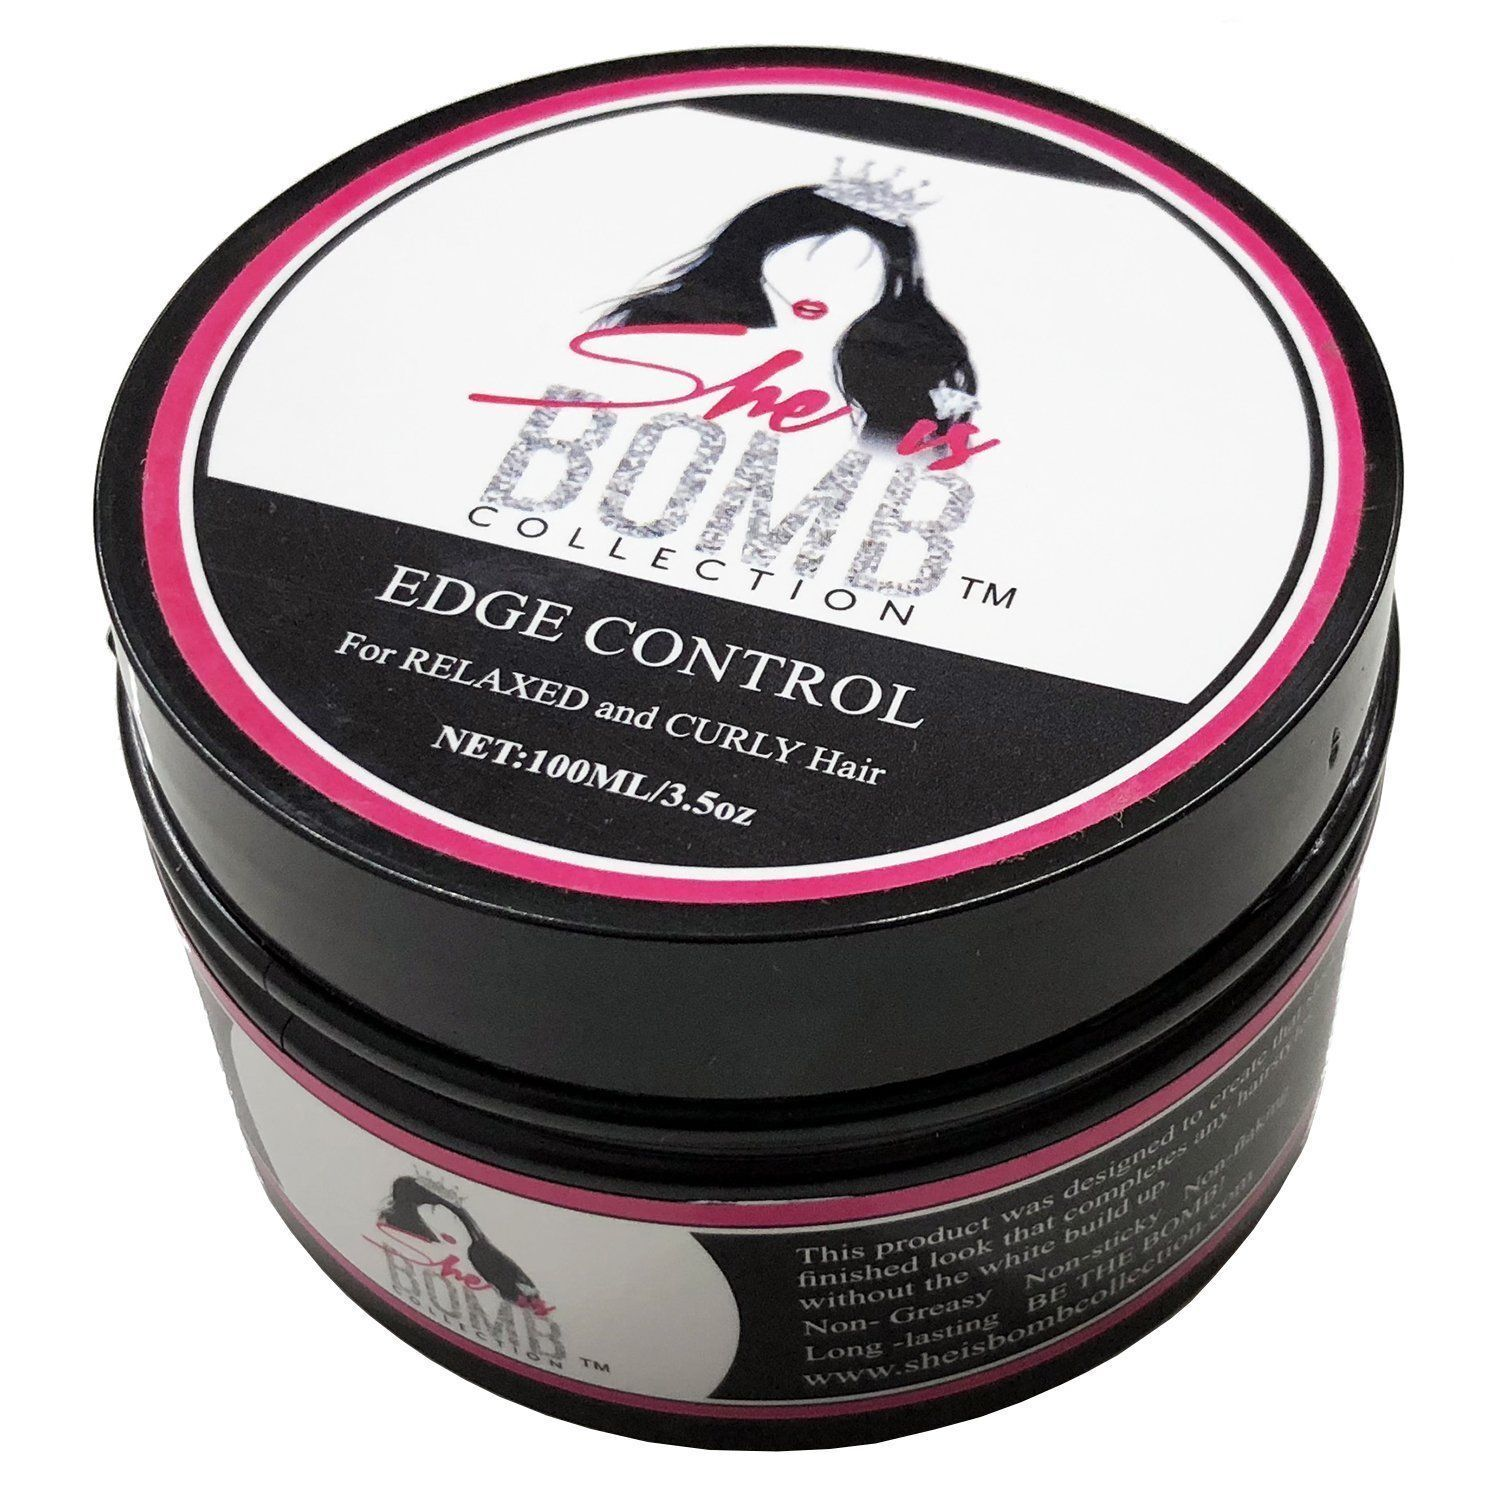 She Is Bomb Collection Edge Control 3.5 Oz. – Free Shipping !!! Hair Care & Styling